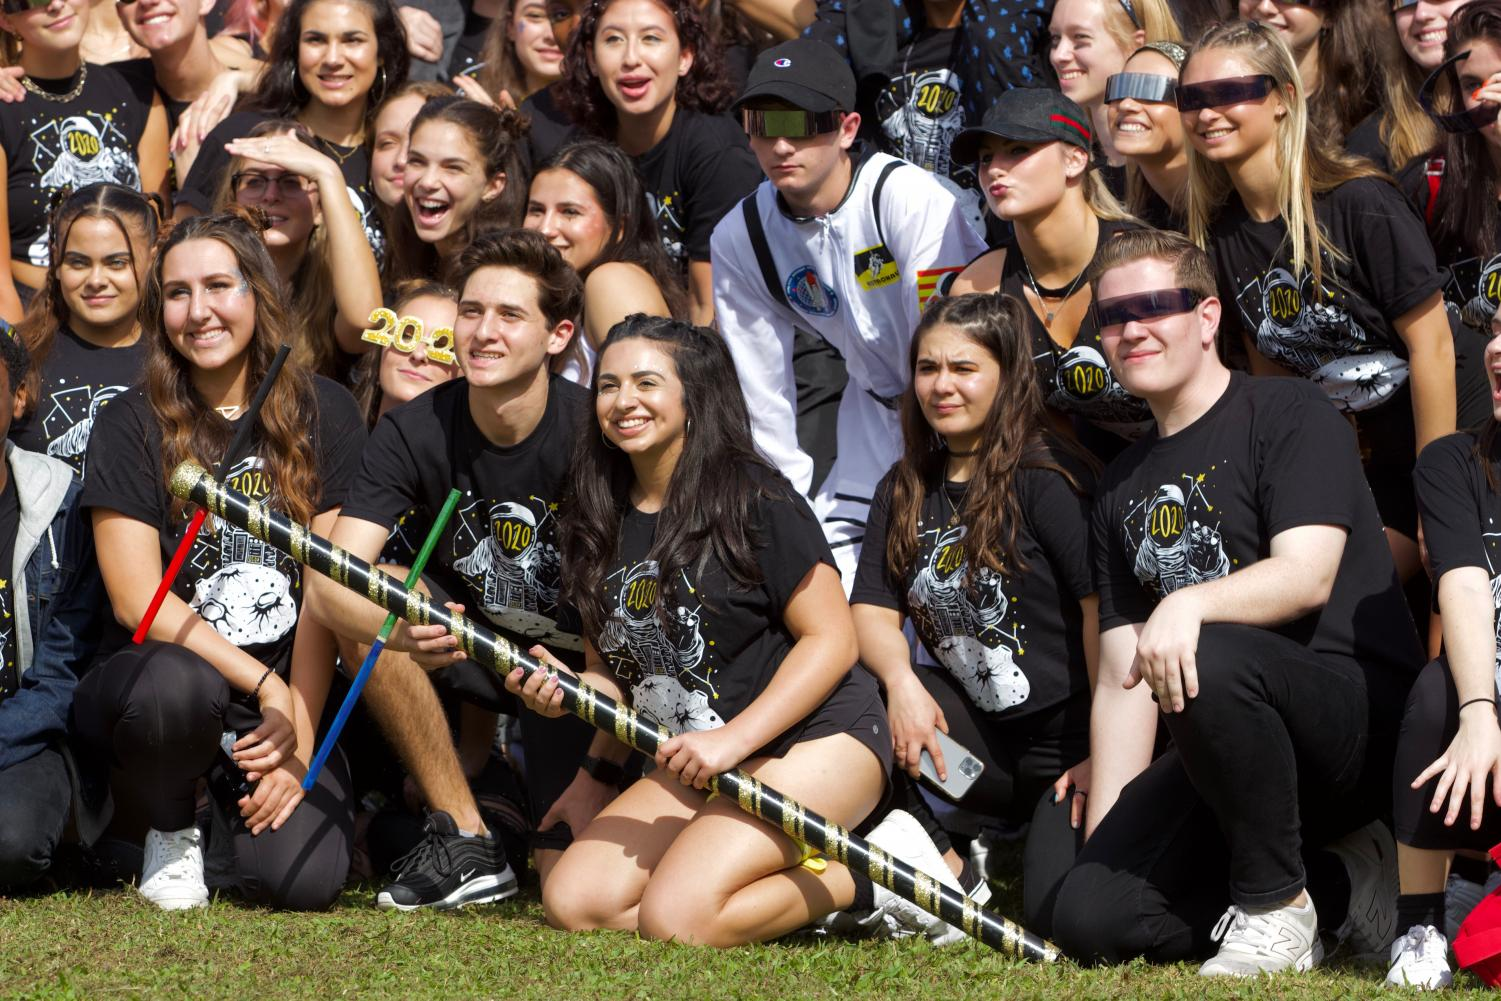 Senior Class Council president Nikolas Zimmerman holds the spirit totem pole with his co-president Mara Vaknin as the entire class celebrates their victory for spirit week.